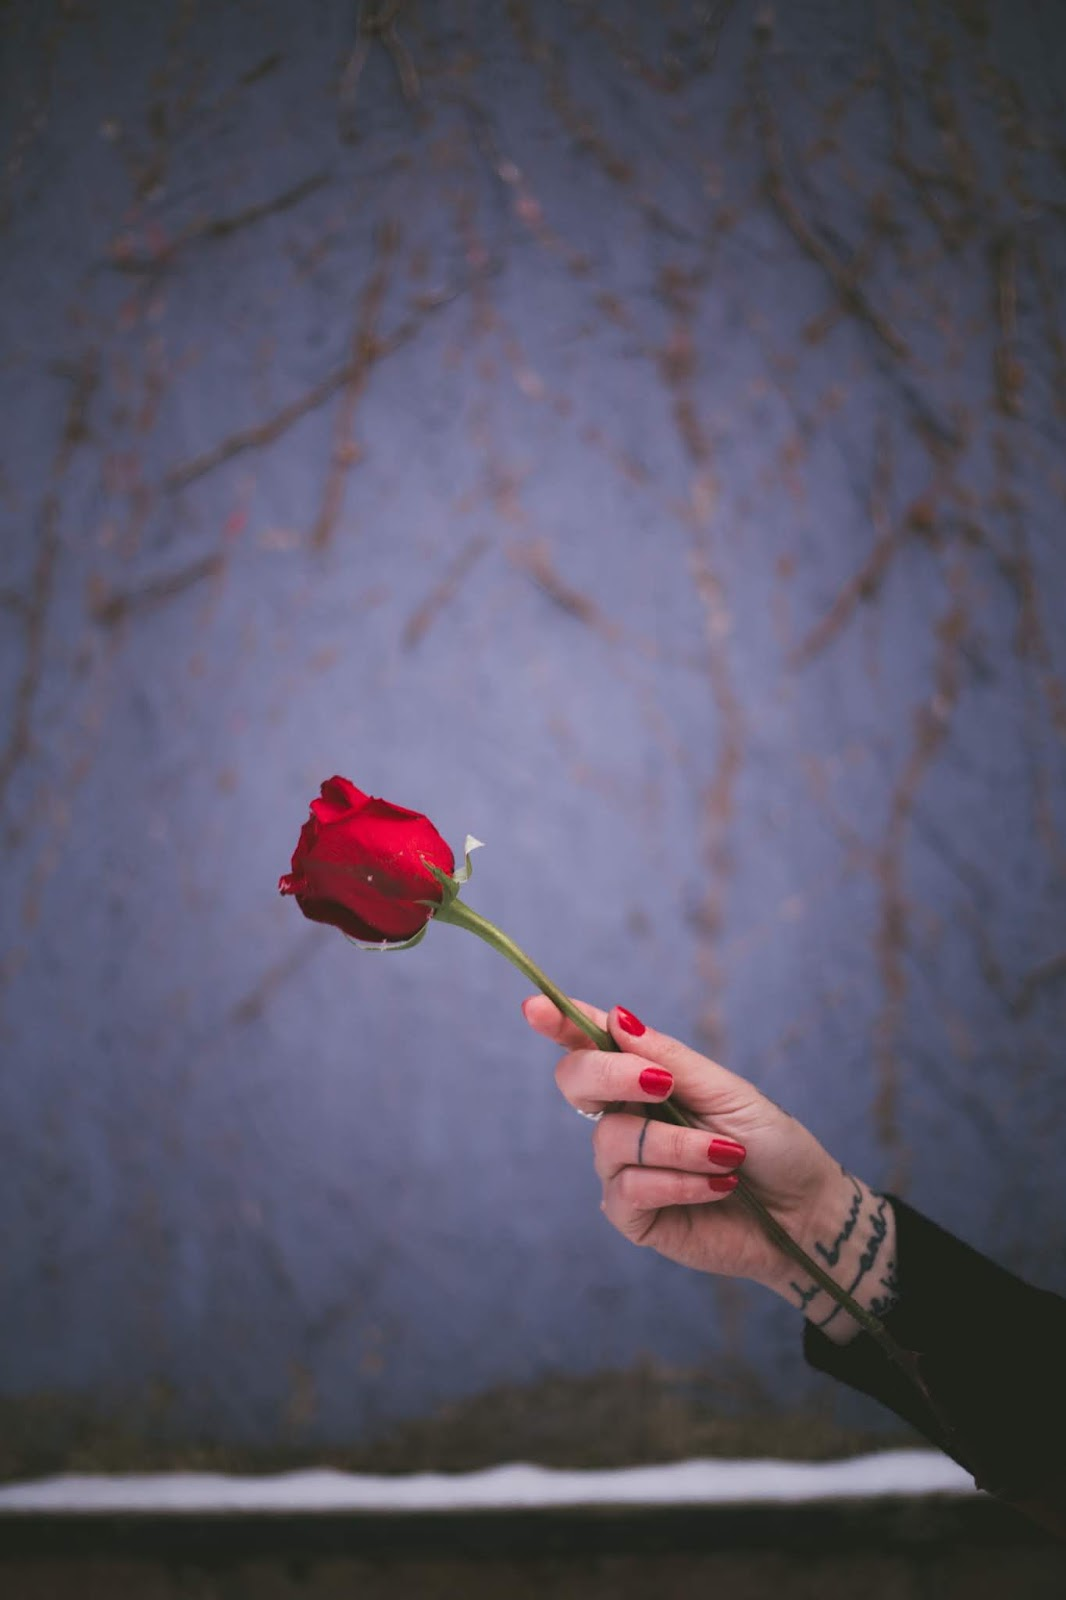 person holding red rose, rose images